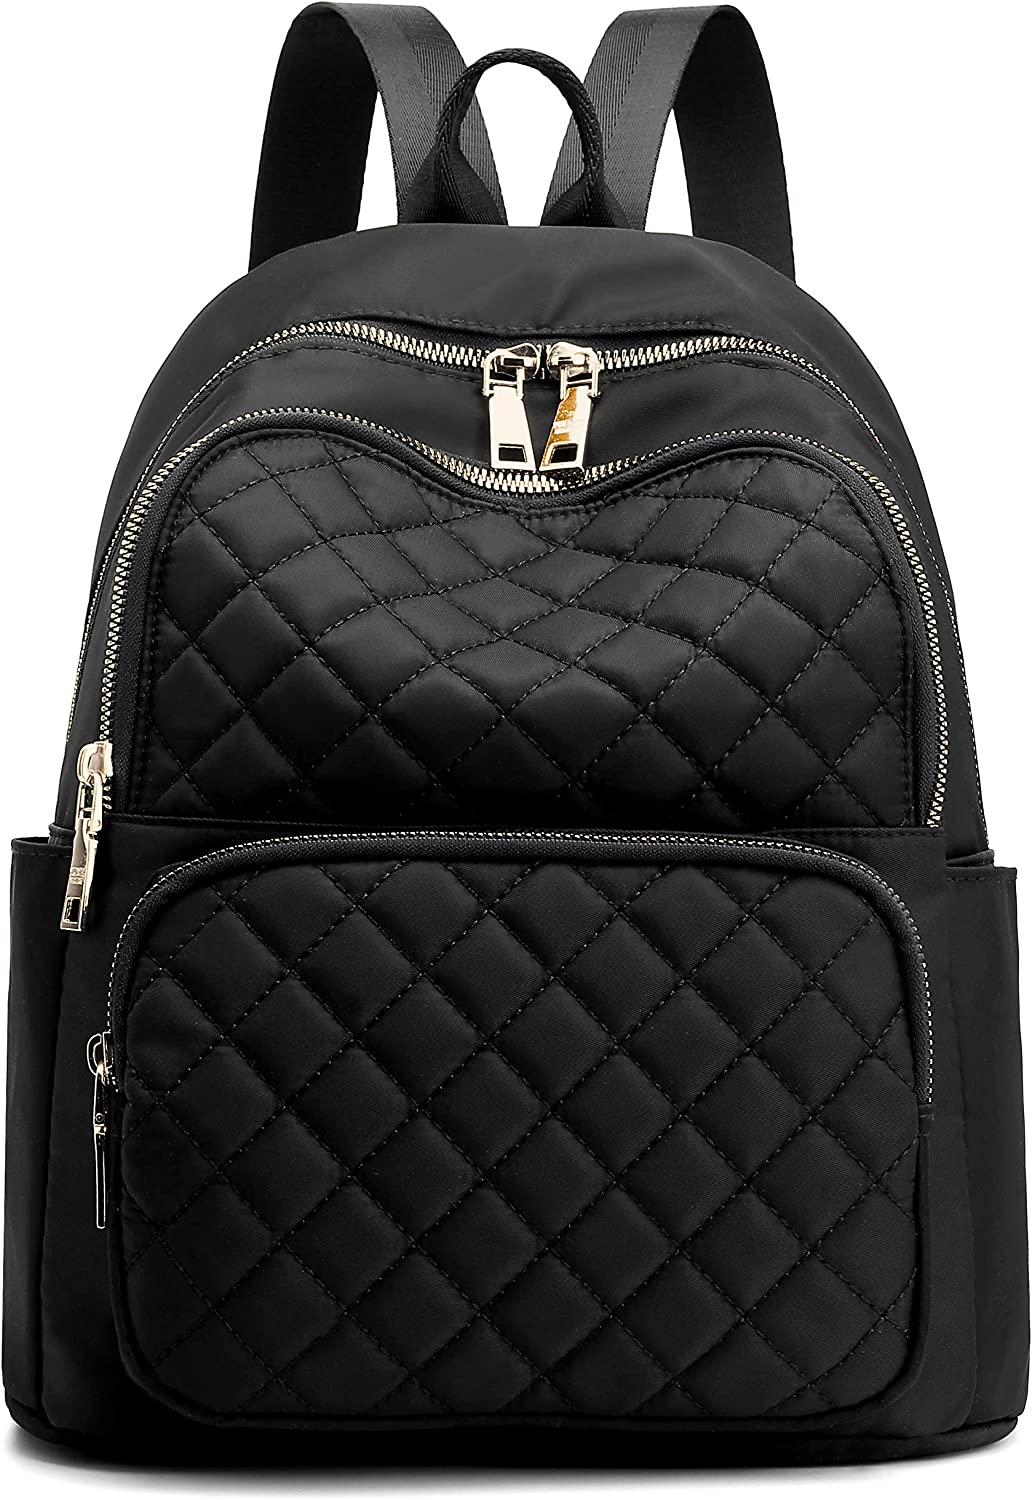 Backpack for Women, Nylon Travel Backpack Purse Black Shoulder Bag Small Casual Daypack for Girls (Black Quilted) : Clothing, Shoes & Jewelry